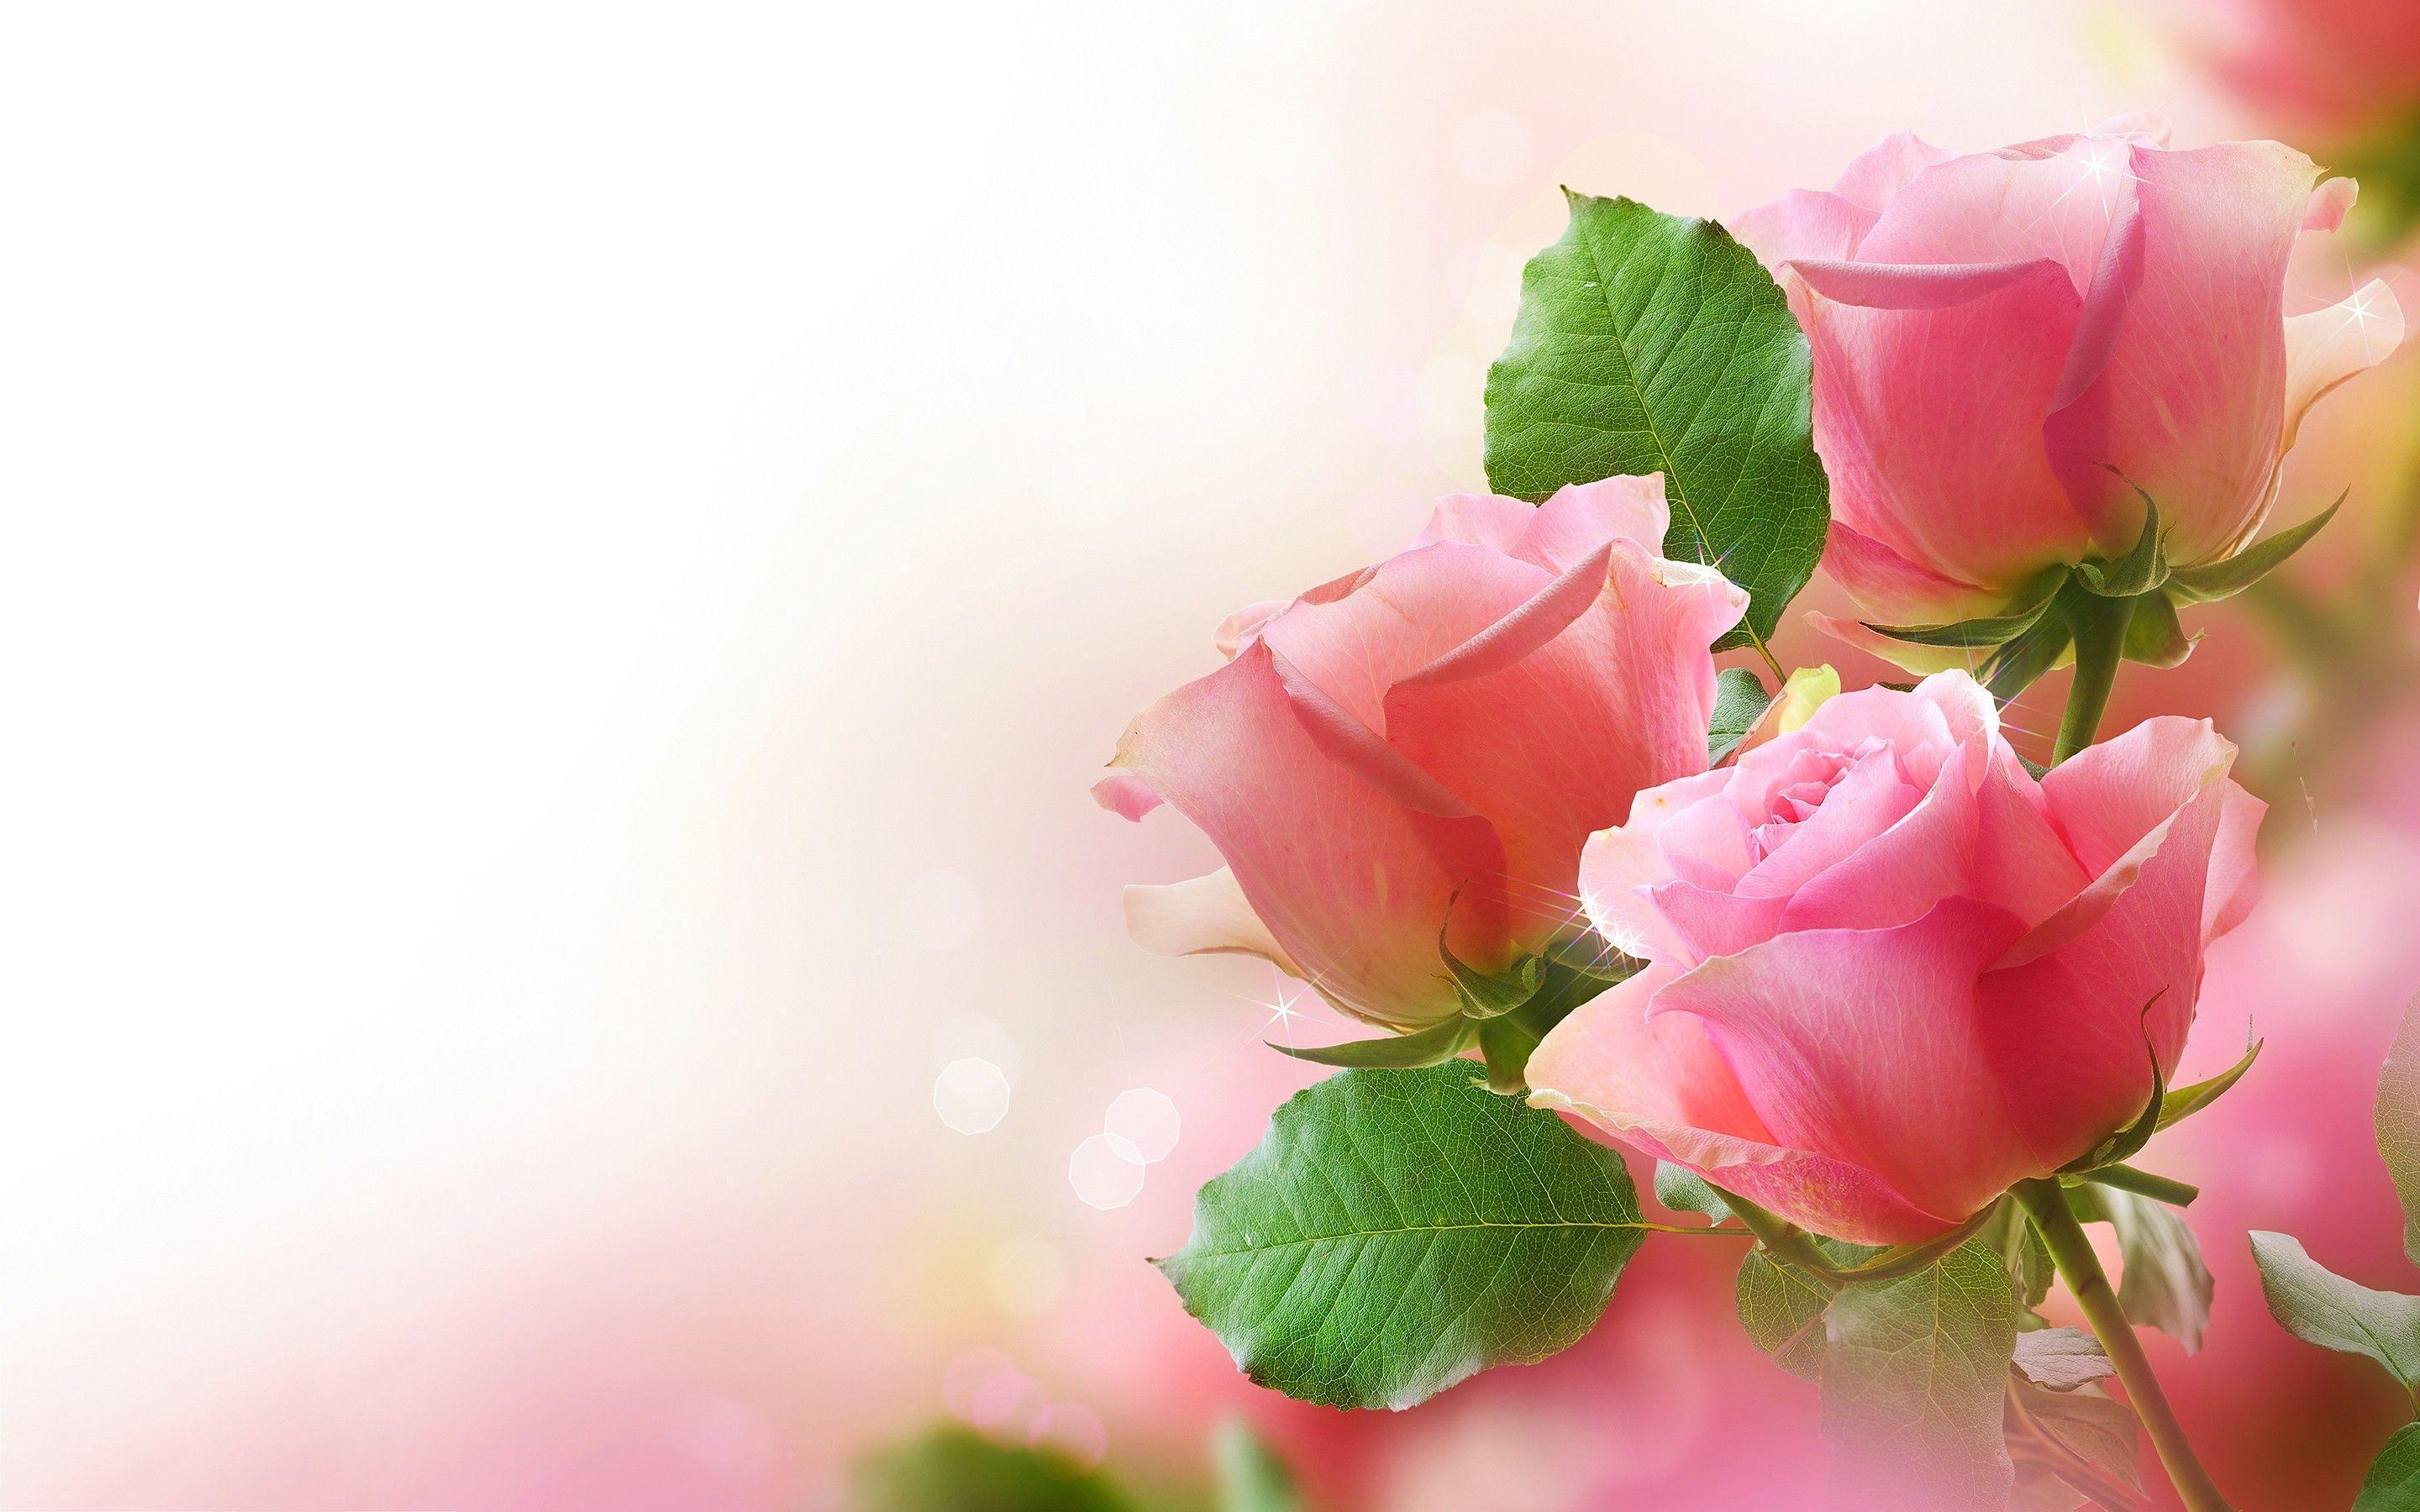 rose wallpapers for desktop full size hd cool 7 hd wallpapers